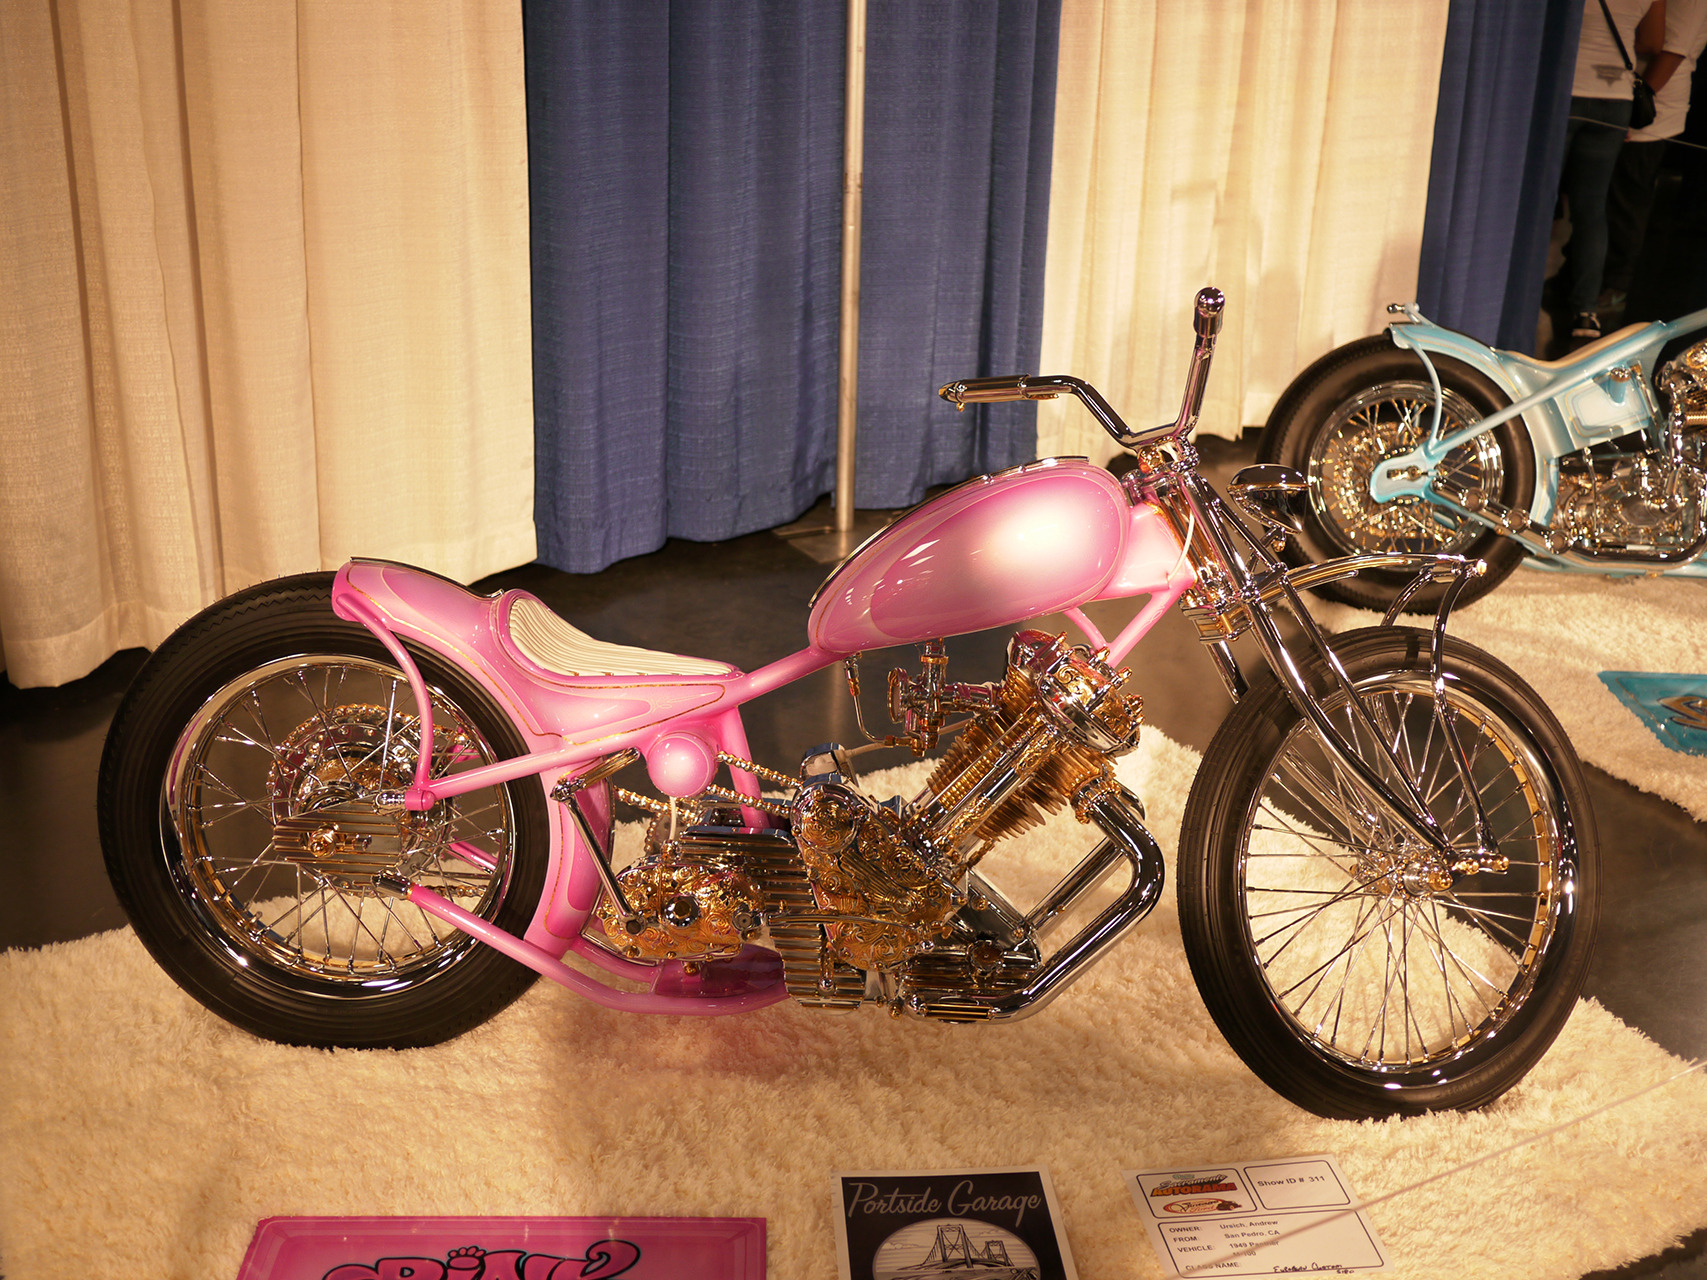 Clearly the world's champion custom Panther M-100. Is it ever ridden? One wonders. Mathew Ursich Is the proud owner.